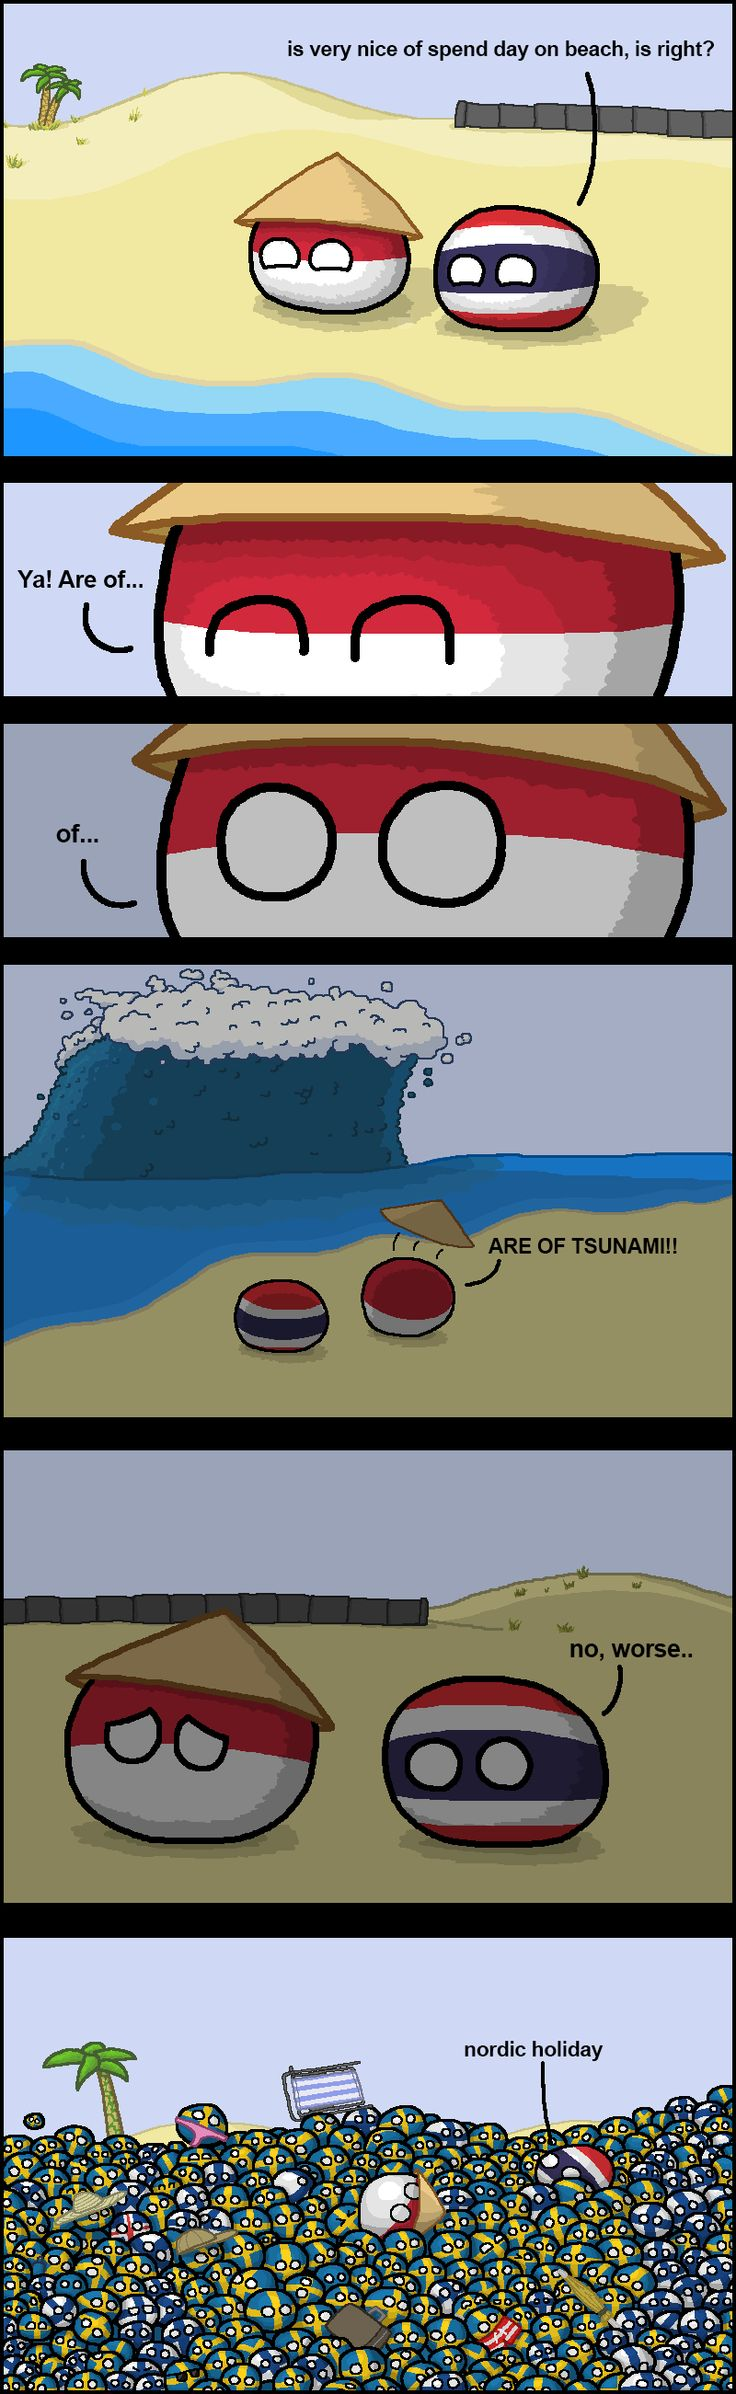 """Thailand the doomed"" (Indonesia, Thailand, Sweden, Finland, Iceland ) by zimonitrome #polandball #countryball"